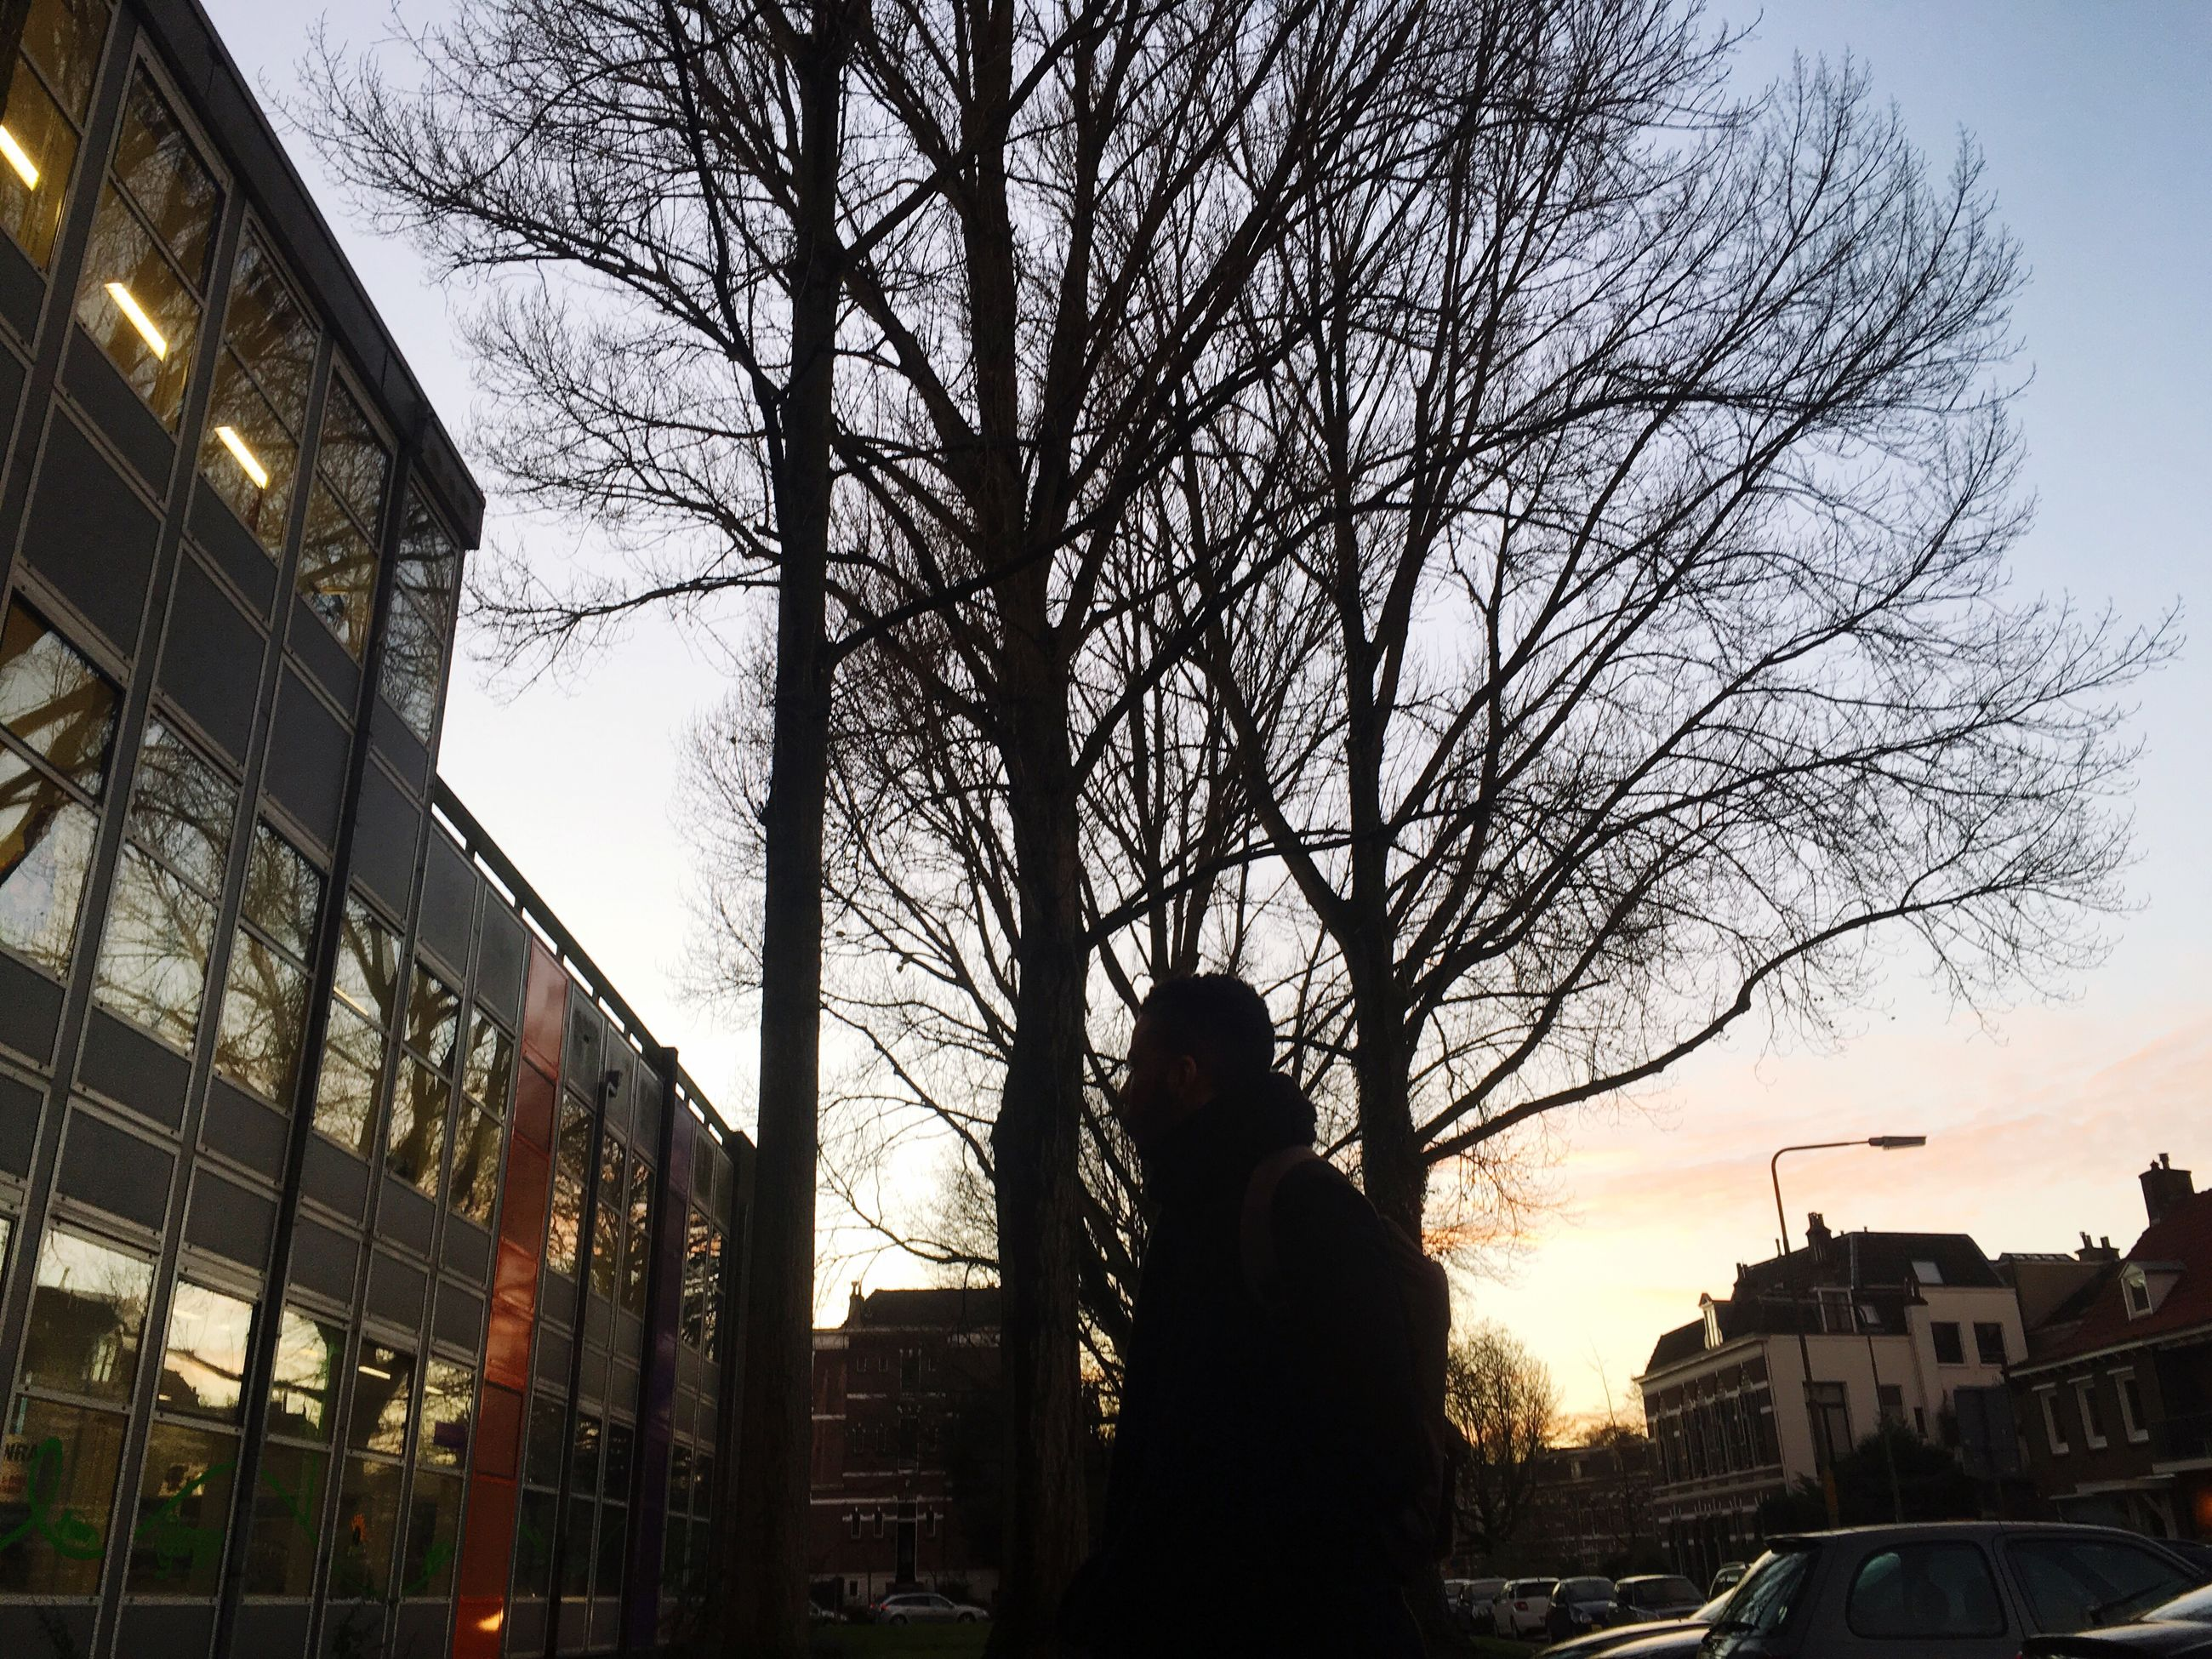 building exterior, bare tree, architecture, built structure, tree, silhouette, branch, city, sunset, sky, low angle view, residential building, building, residential structure, dusk, house, tree trunk, clear sky, outdoors, no people